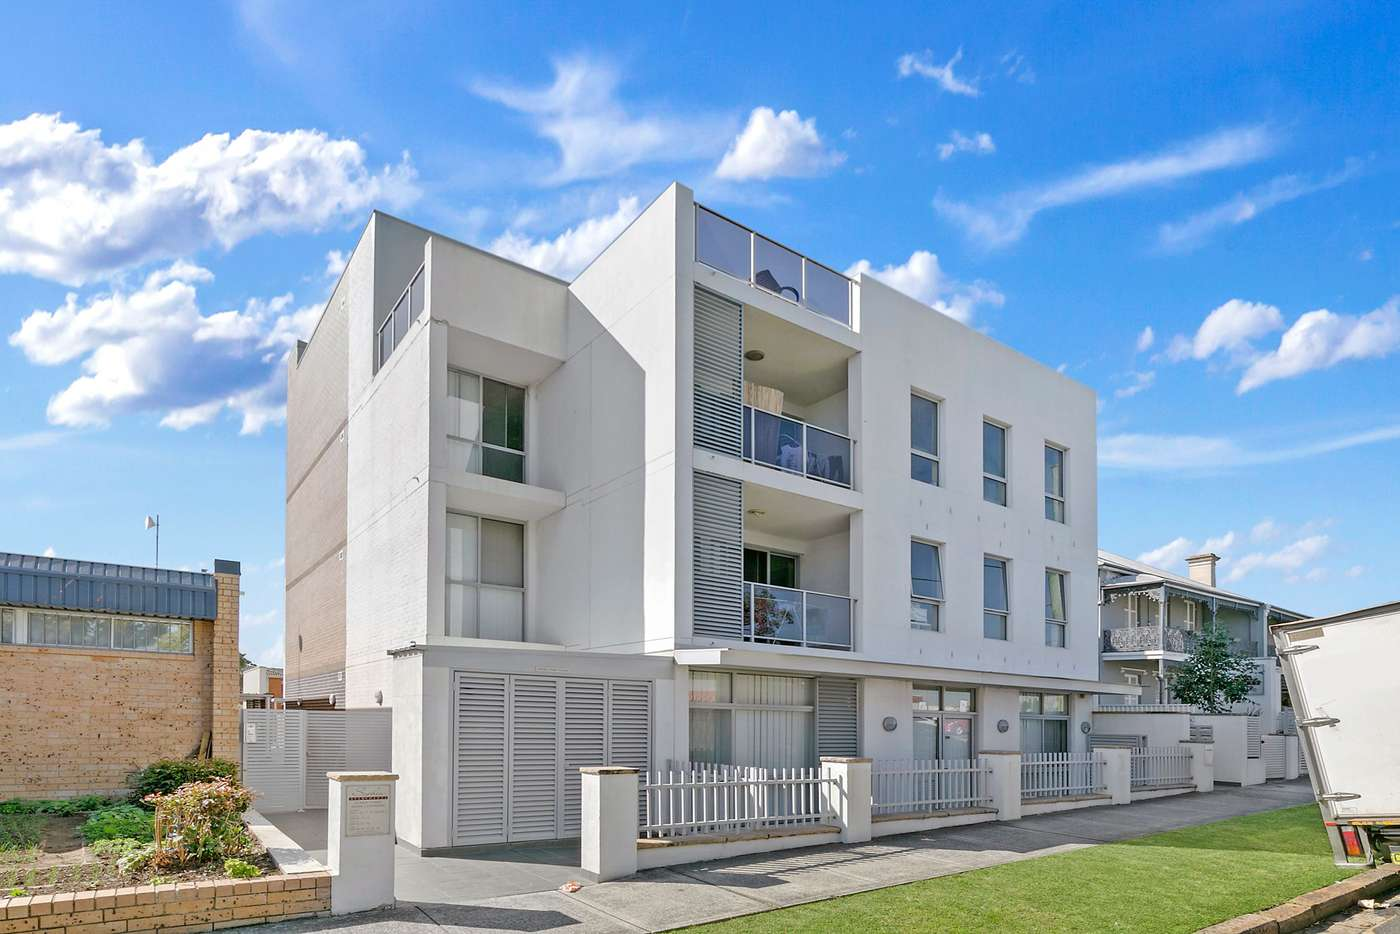 Main view of Homely apartment listing, 11/51A-53 High Street, Parramatta NSW 2150